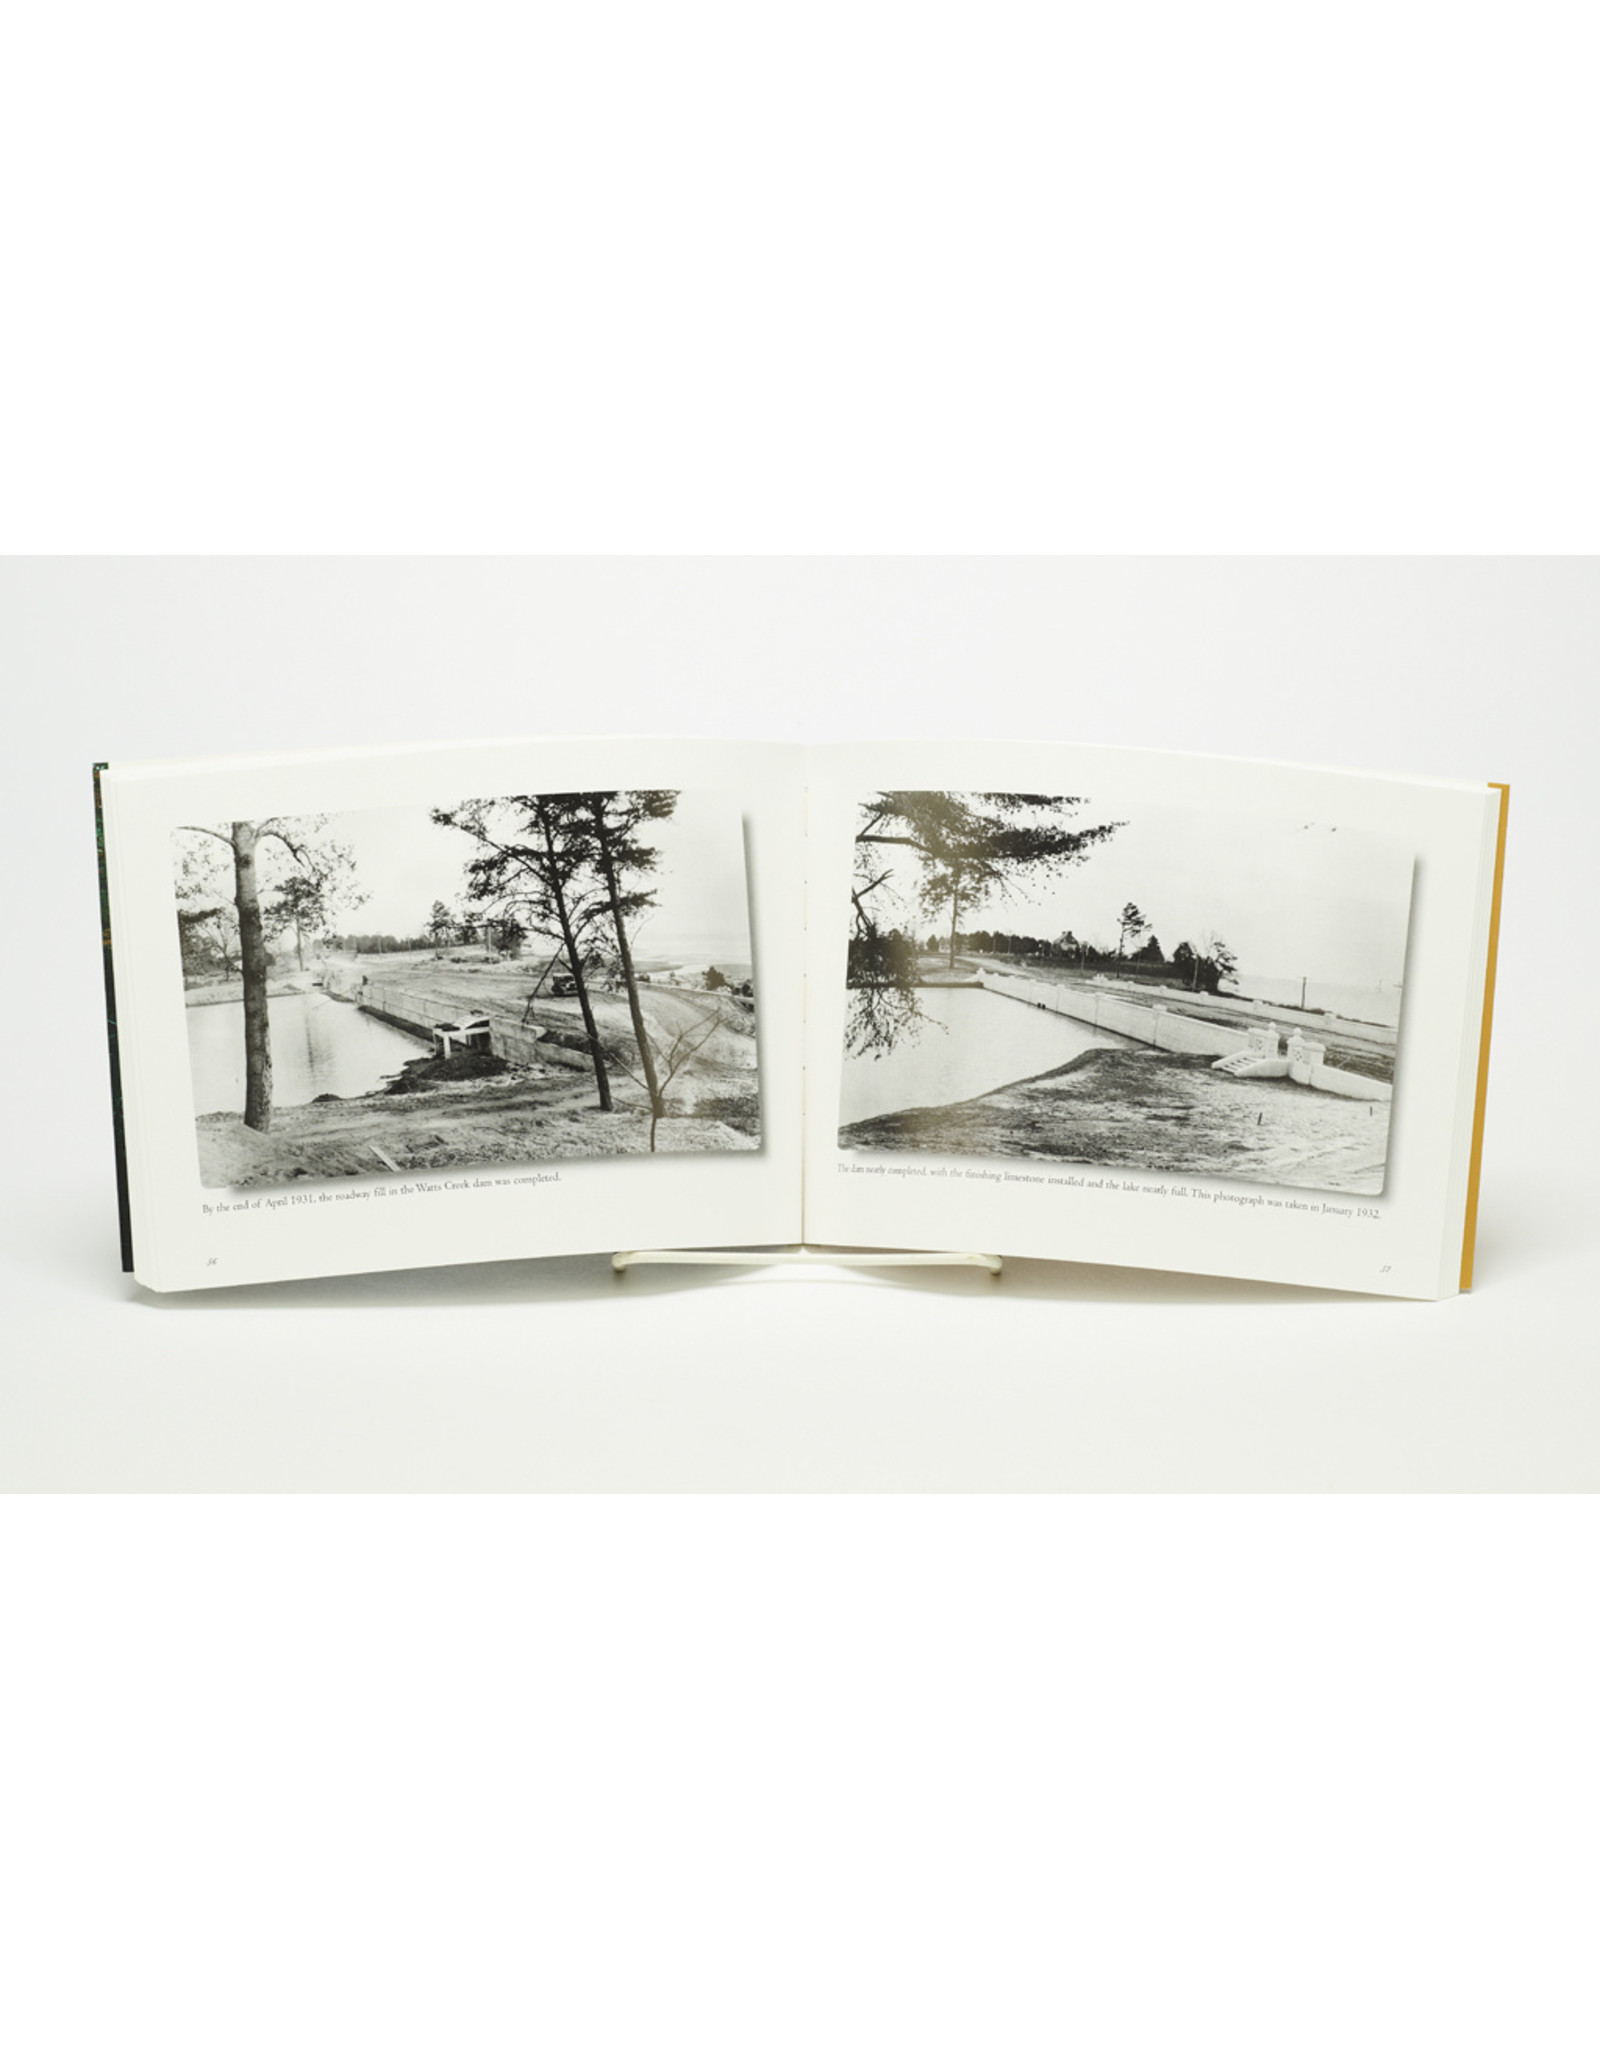 Mariners' Museum Park Book: The Making of an Urban Oasis